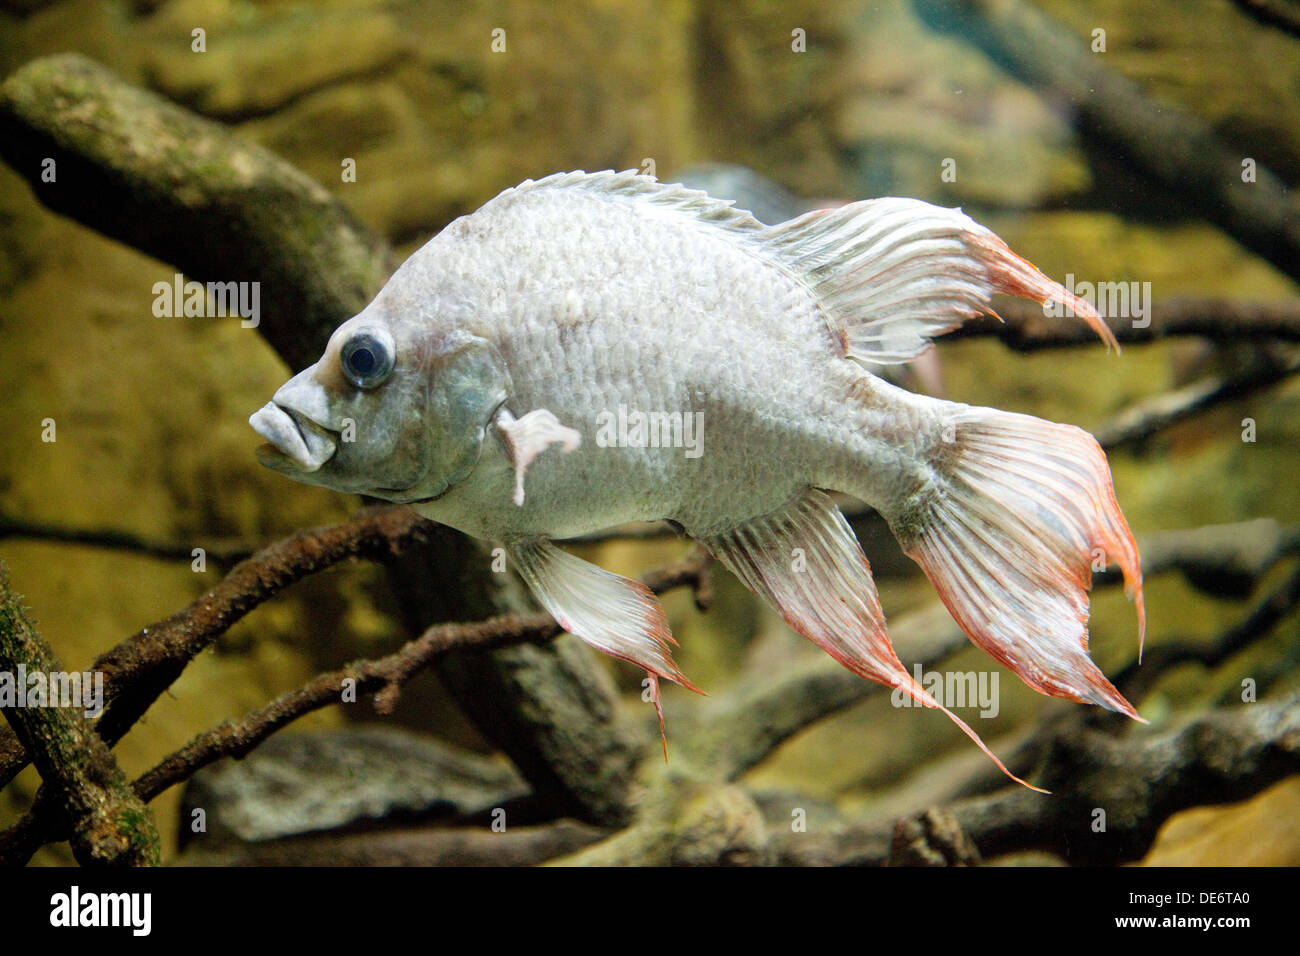 Mangarahara Cichlid, - Ptychochromis Mangarahara, from Madagascar, now extinct in the wild, critically endangered species - Stock Image